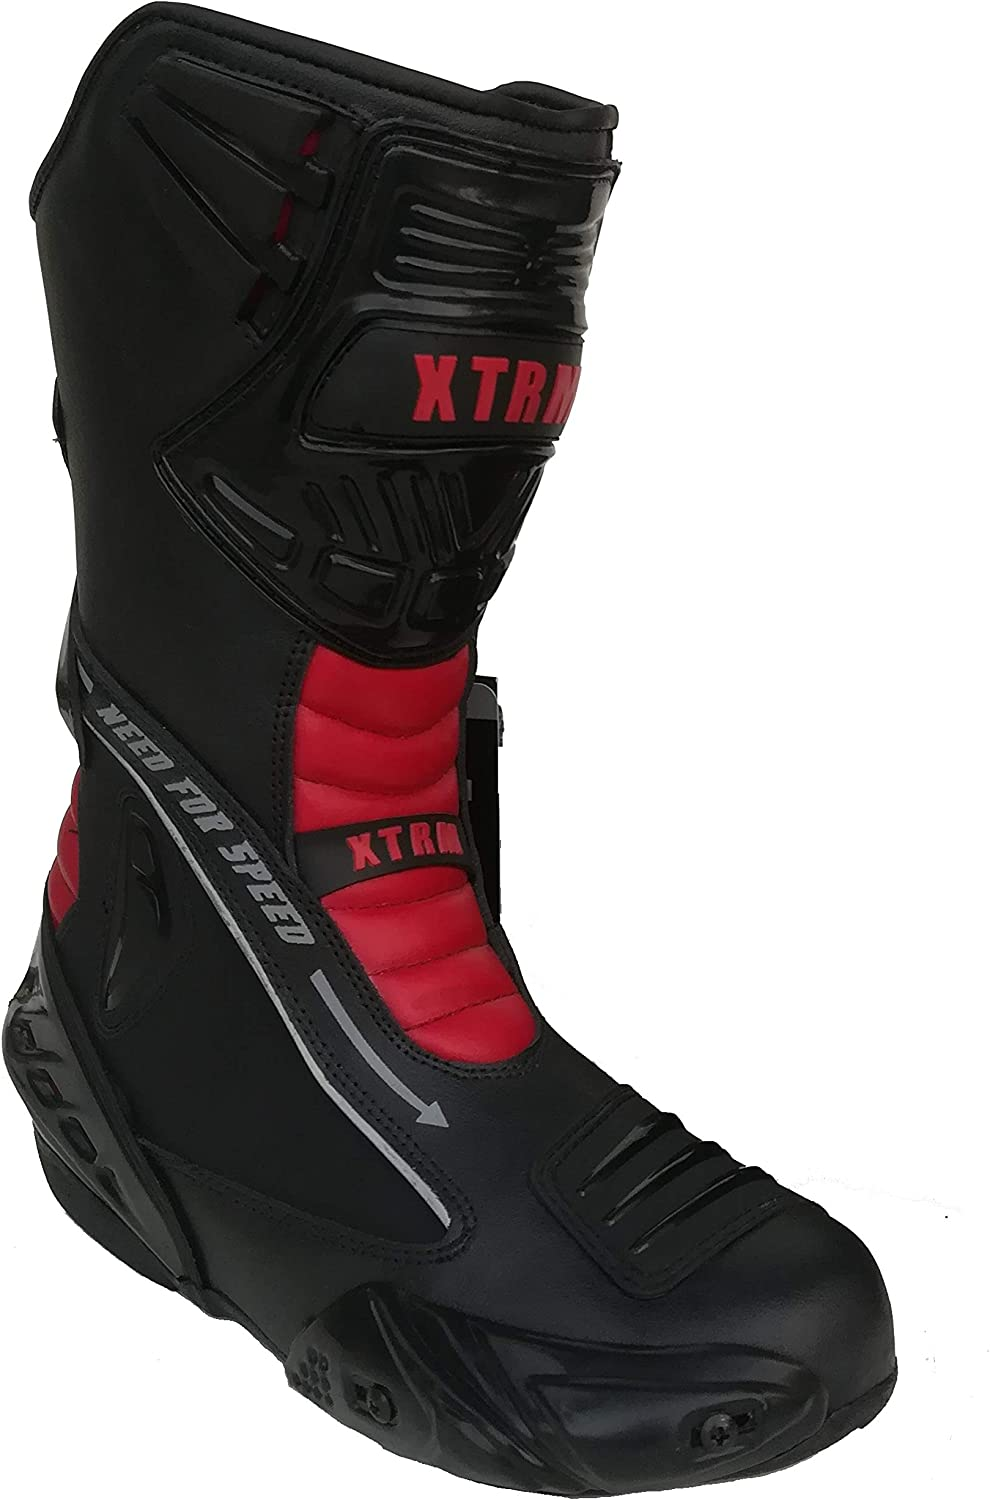 XTRM EVO Motorcycle Adult SEMI Sports Boots Motorbike Scooter Men Women Biker Rider Sport Race Touring Armour Leather Boots RED Red, EU 40// UK 6